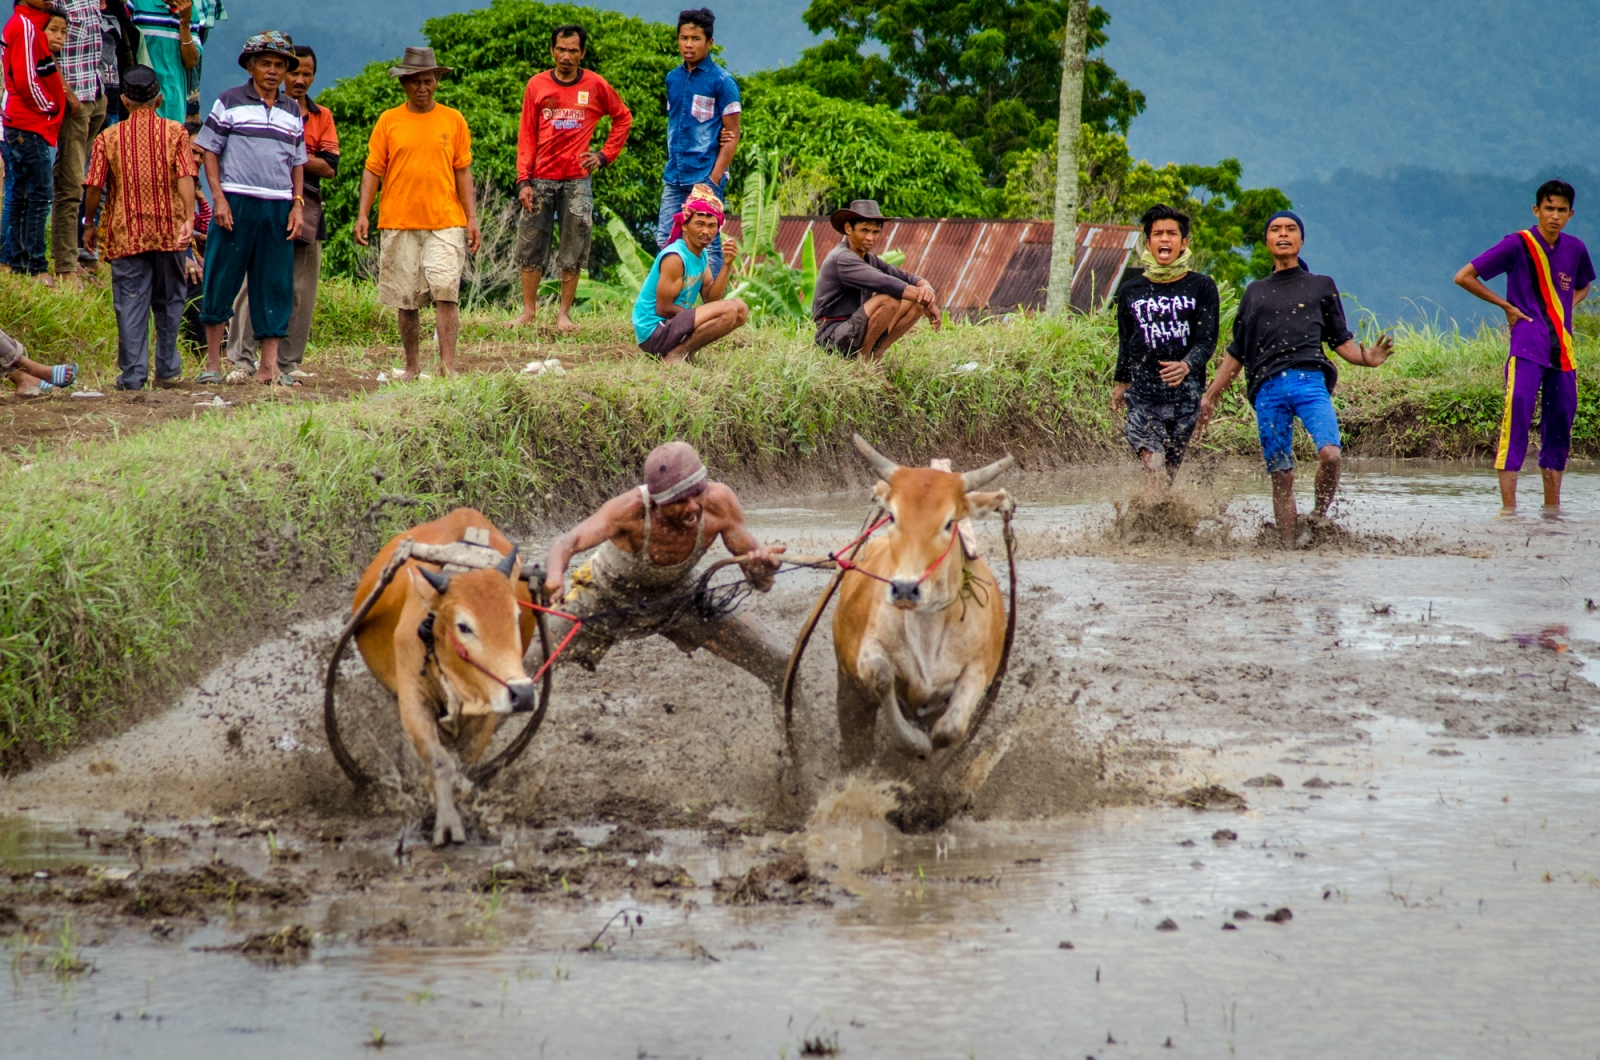 As the run begins, the jockey works to keep the bulls together, legs spread wide, as he reaches down to bite the tails, as is customary, to encourage a strong run from the powerful bulls. Fans look on as the the lap begins, hoping for a straight, fast and completed run.